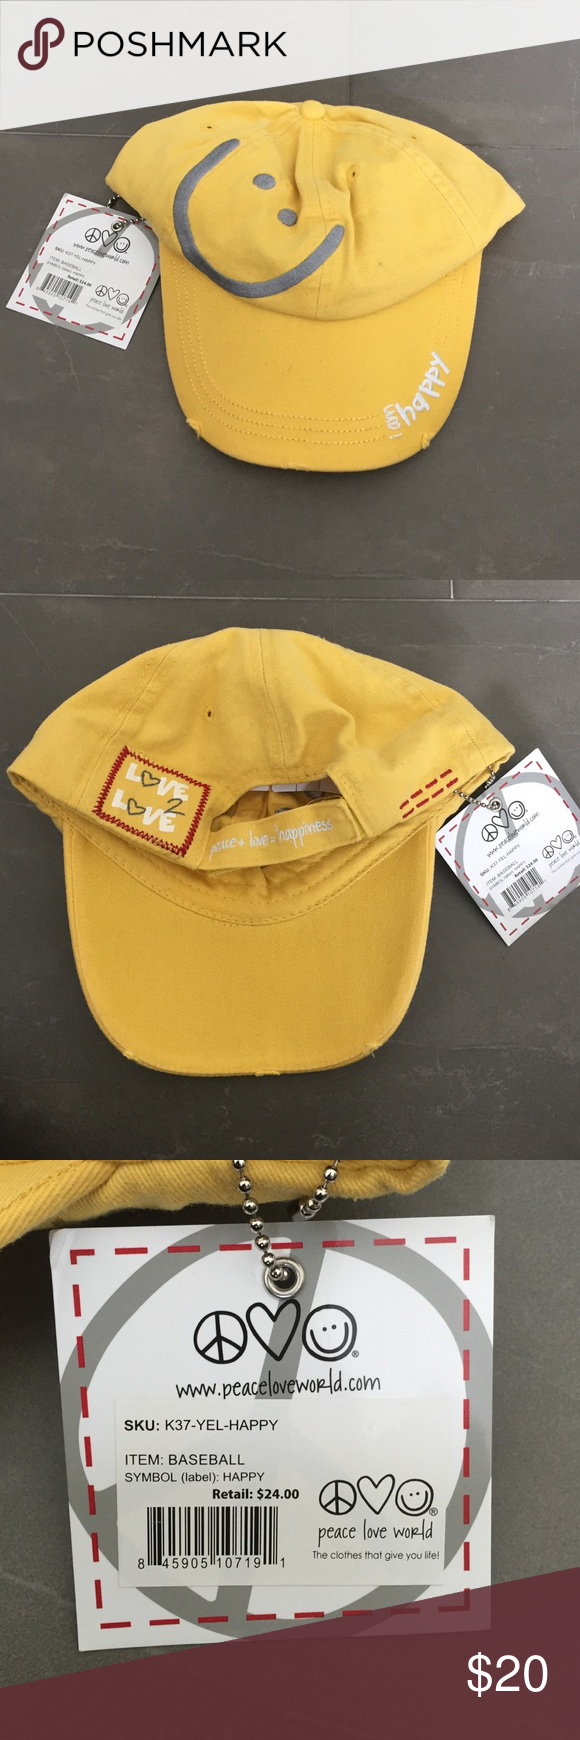 Peace Love World Kids Baseball Hat Yellow Happy Baseball Hat One Size Fits All Never Been Worn Can Be For Boy Or Girl Peace Love World Accessories Hats